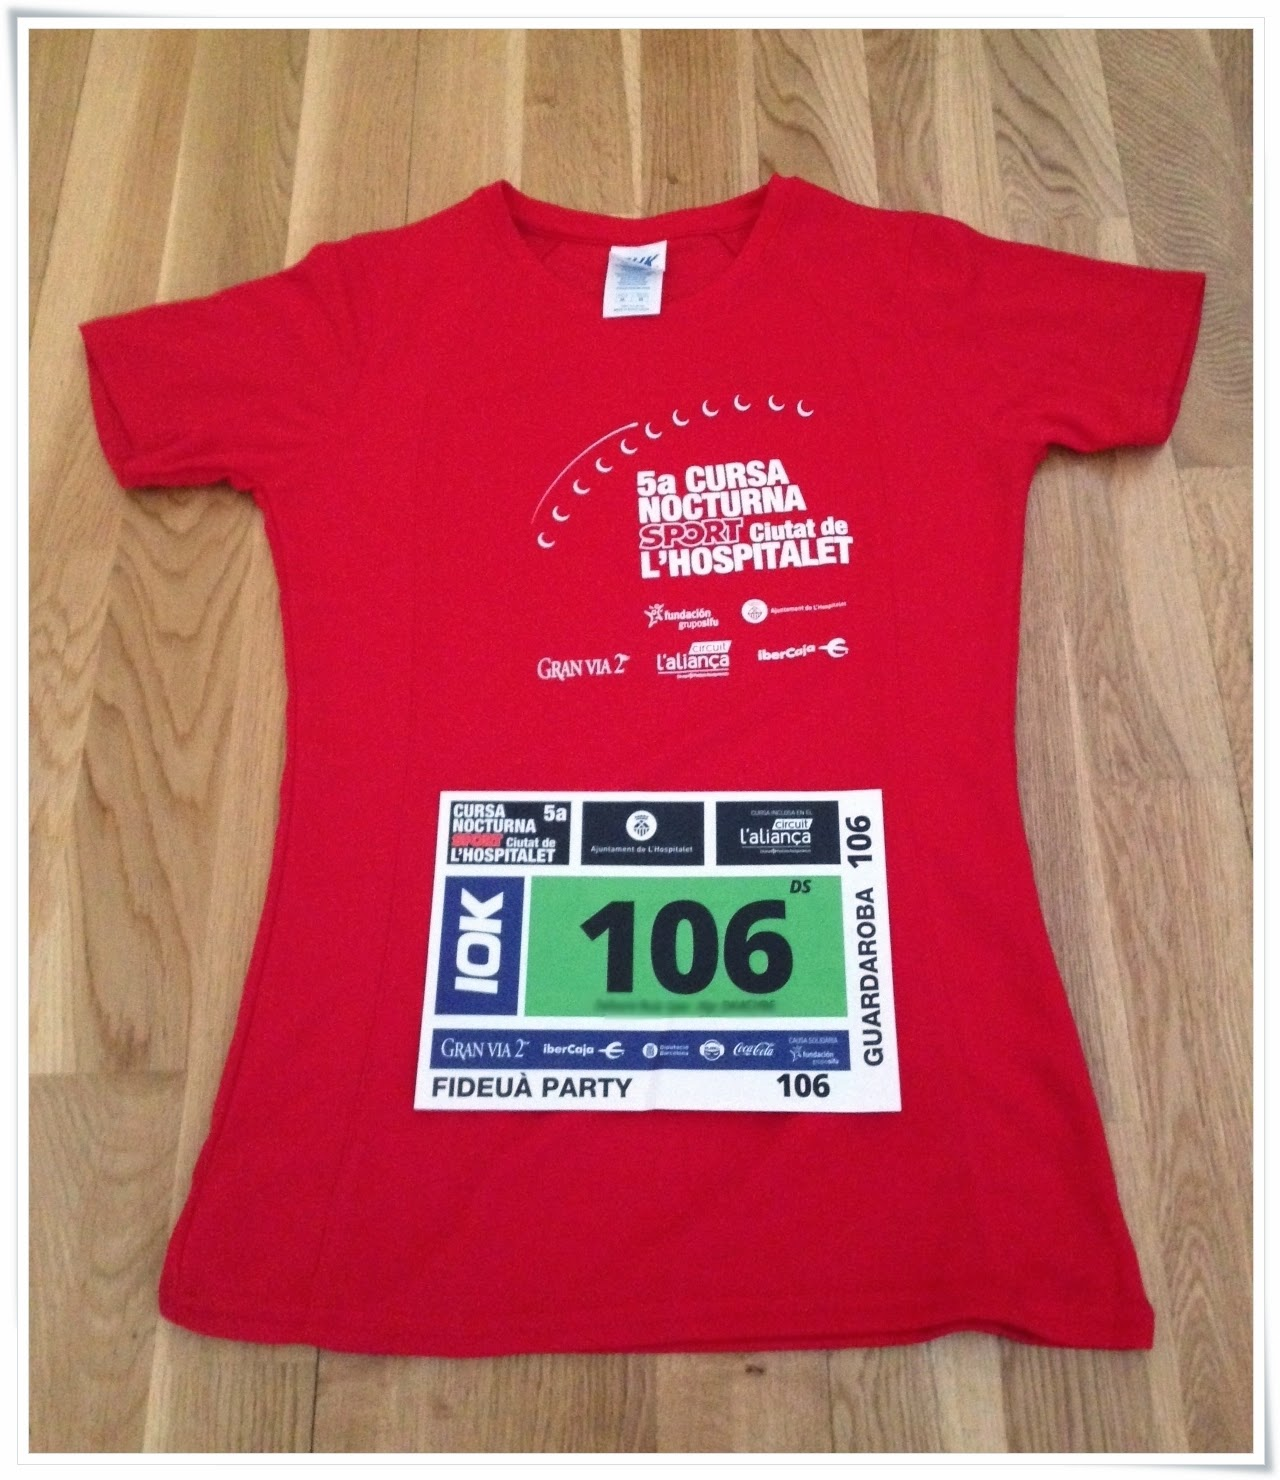 Cursa Nocturna l'Hospitalet 2014 camiseta